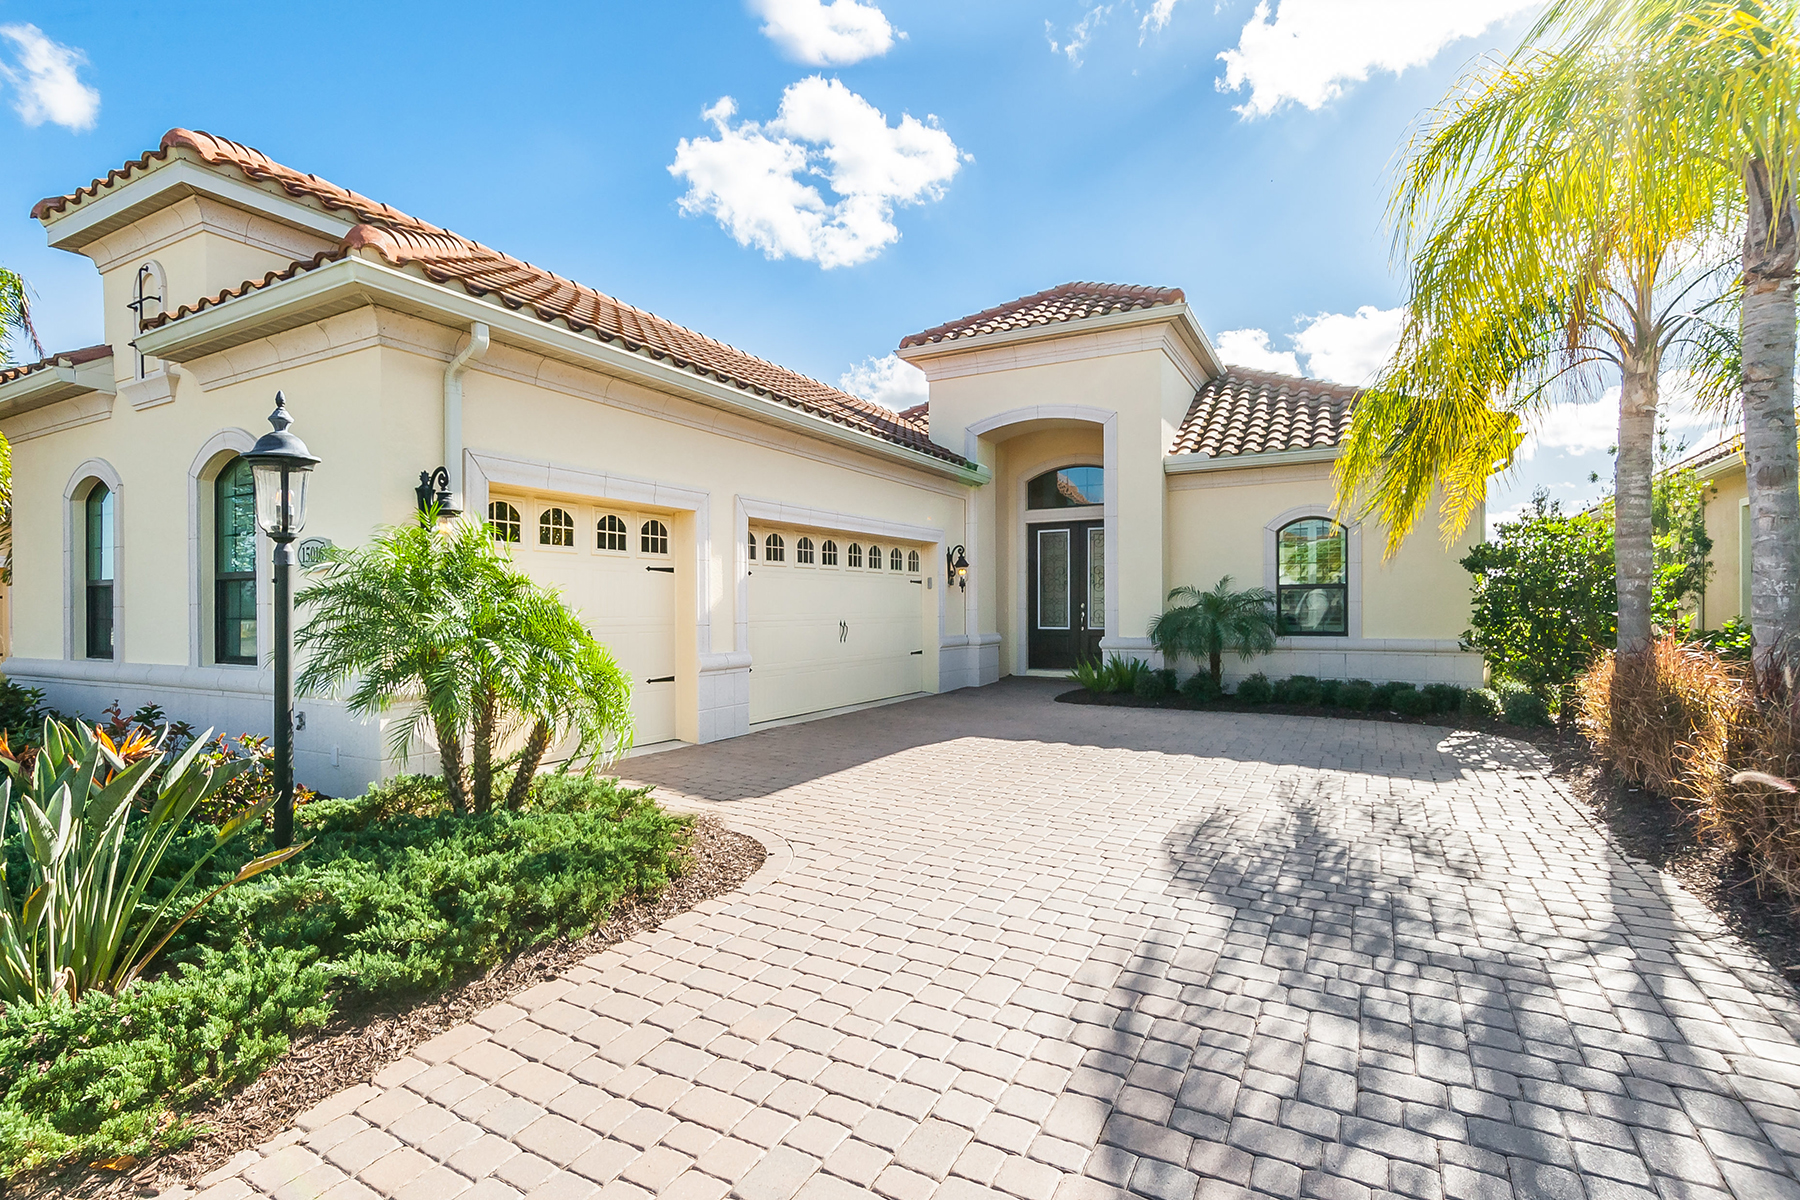 Single Family Home for Sale at COUNTRY CLUB EAST 15016 Castle Park Terr, Lakewood Ranch, Florida 34202 United States